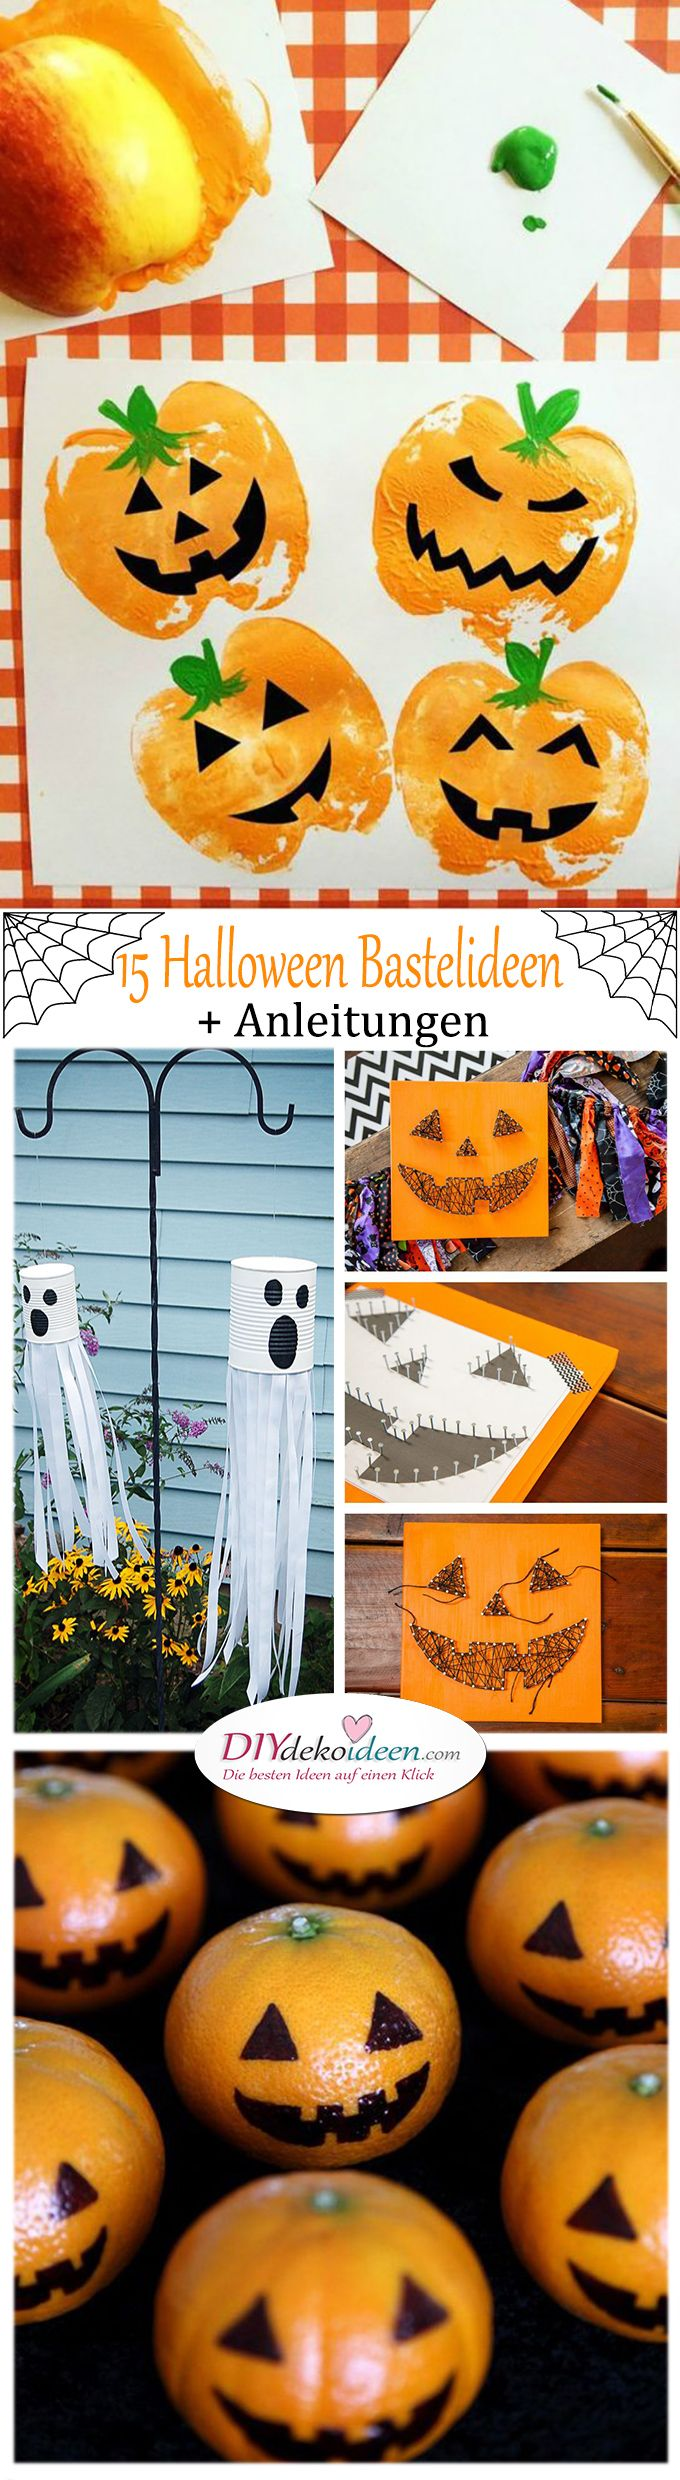 die besten 25 halloween spiele ideen auf pinterest halloween spiele f r kinder halloween. Black Bedroom Furniture Sets. Home Design Ideas